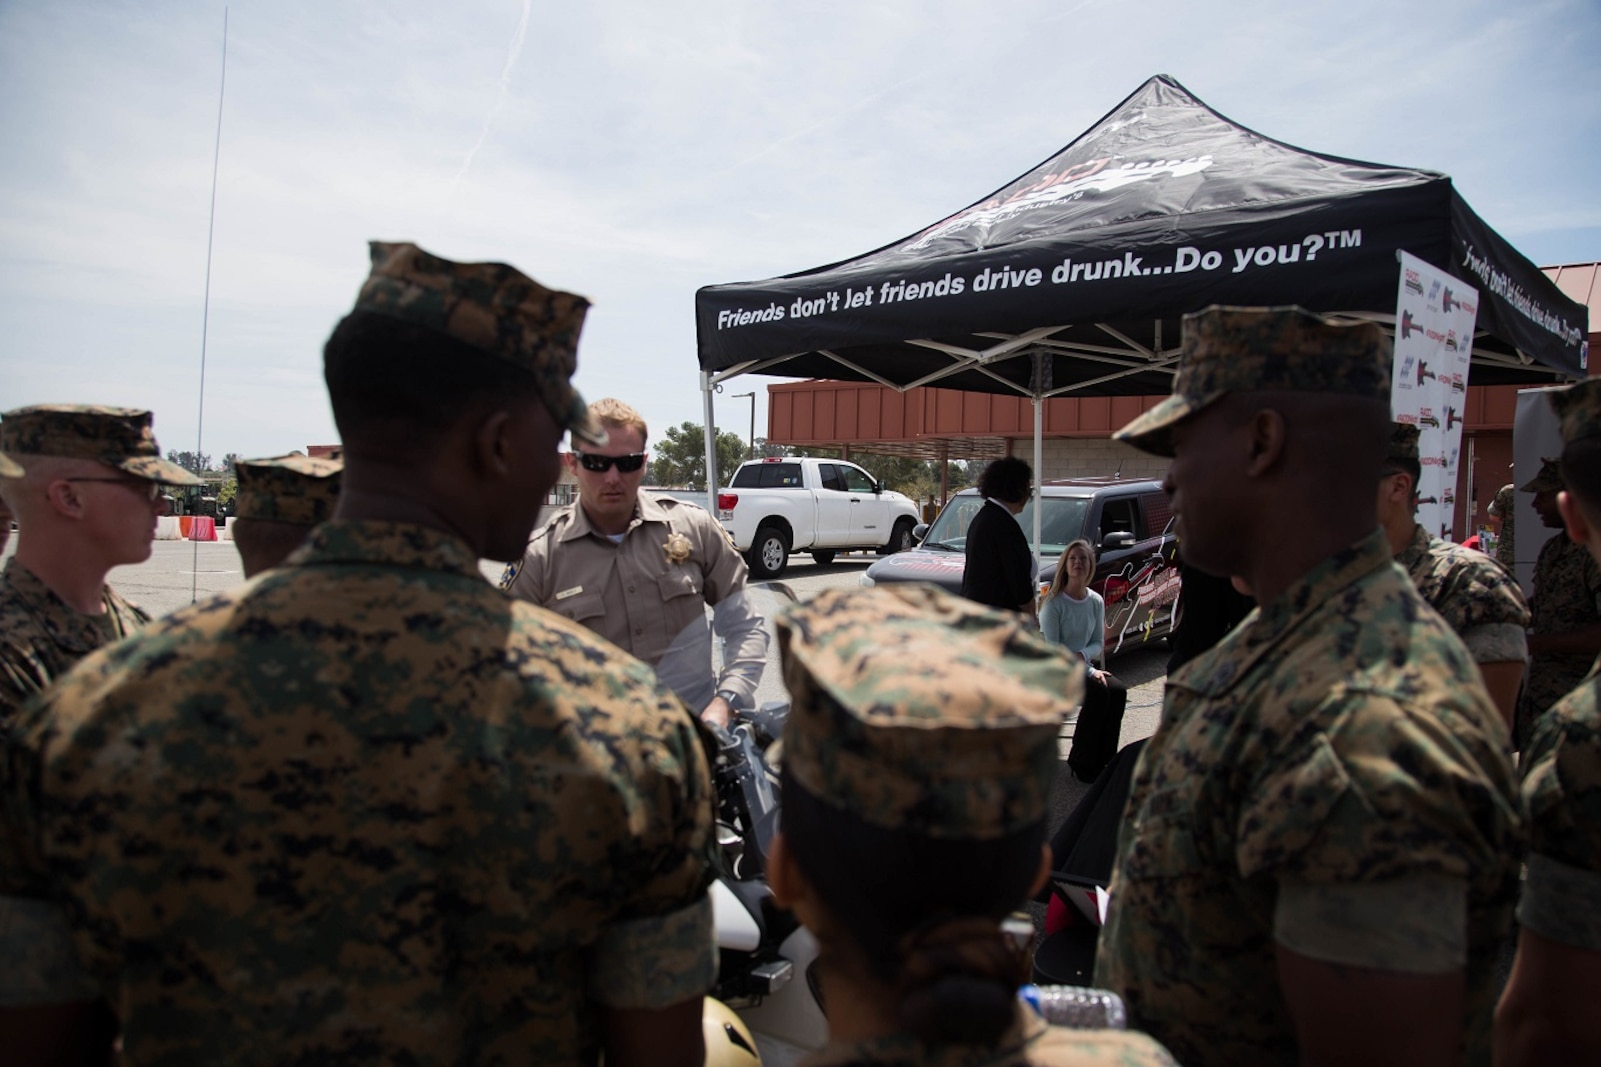 Combat Logistics Regiment 1 Participates in the Alcohol Free Weekend event